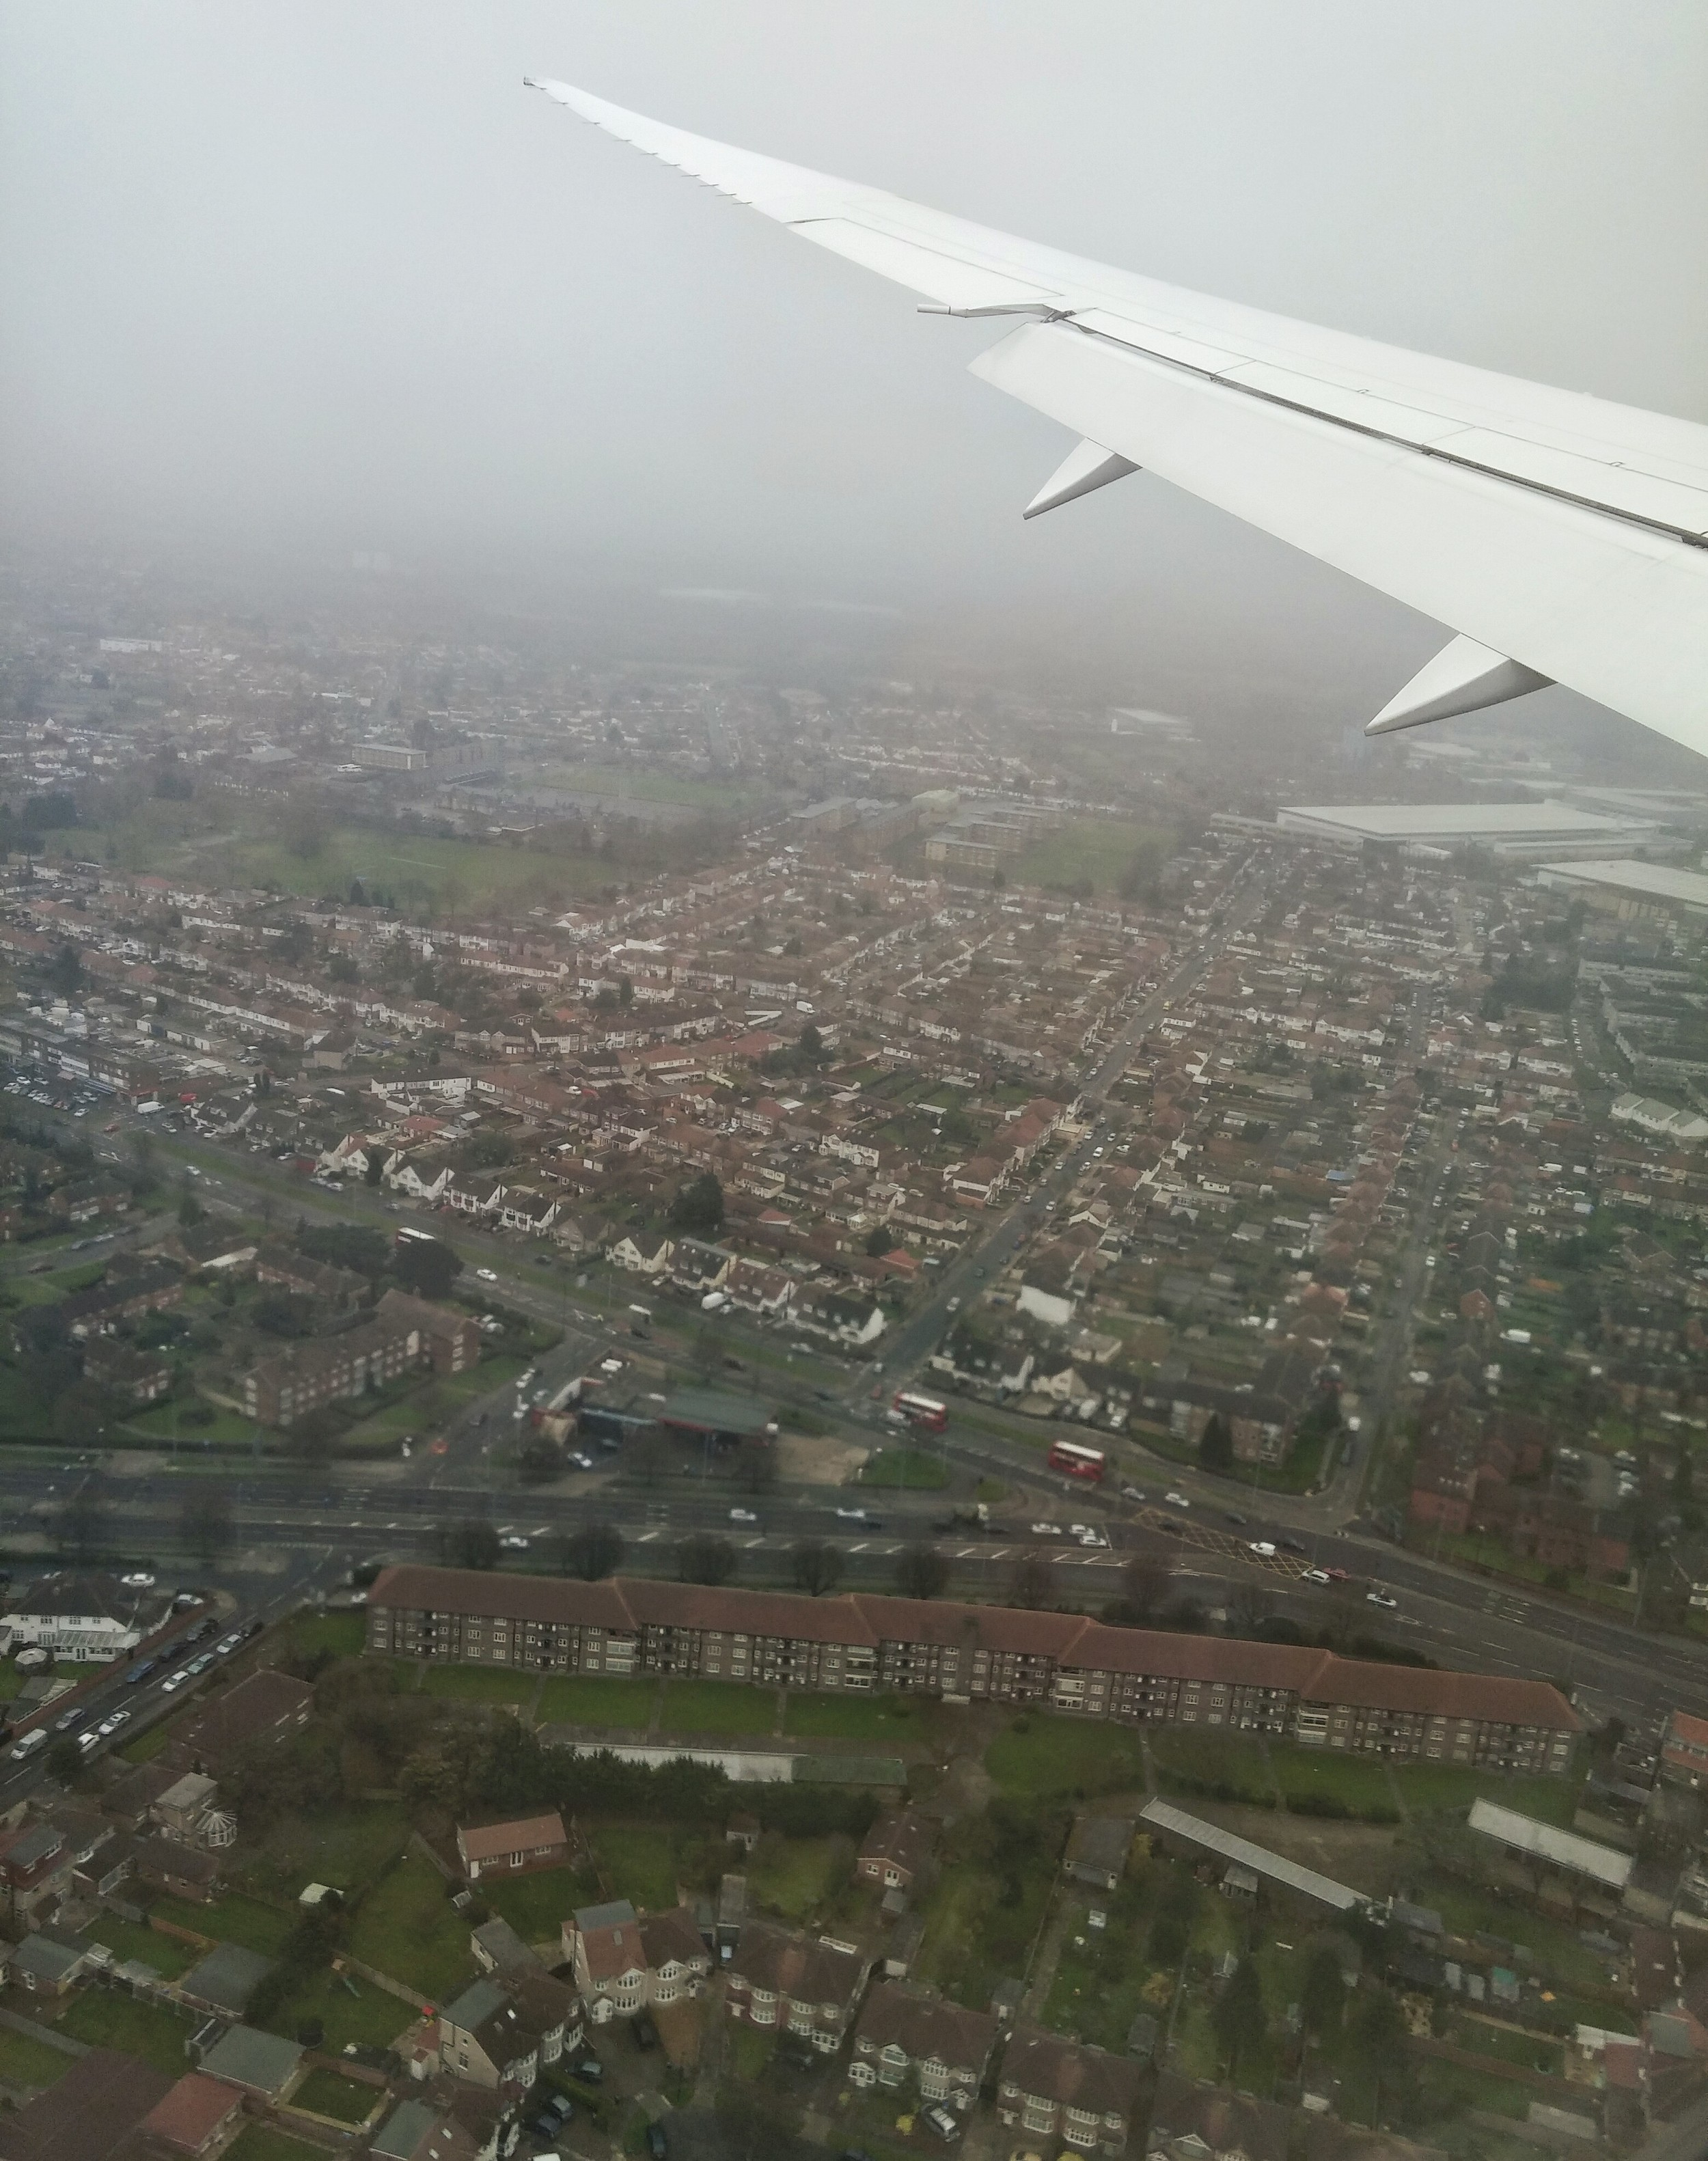 This is what the quaint homes of London look like from above. The mist and fog and gray was exactly how we'd imagined it would be.